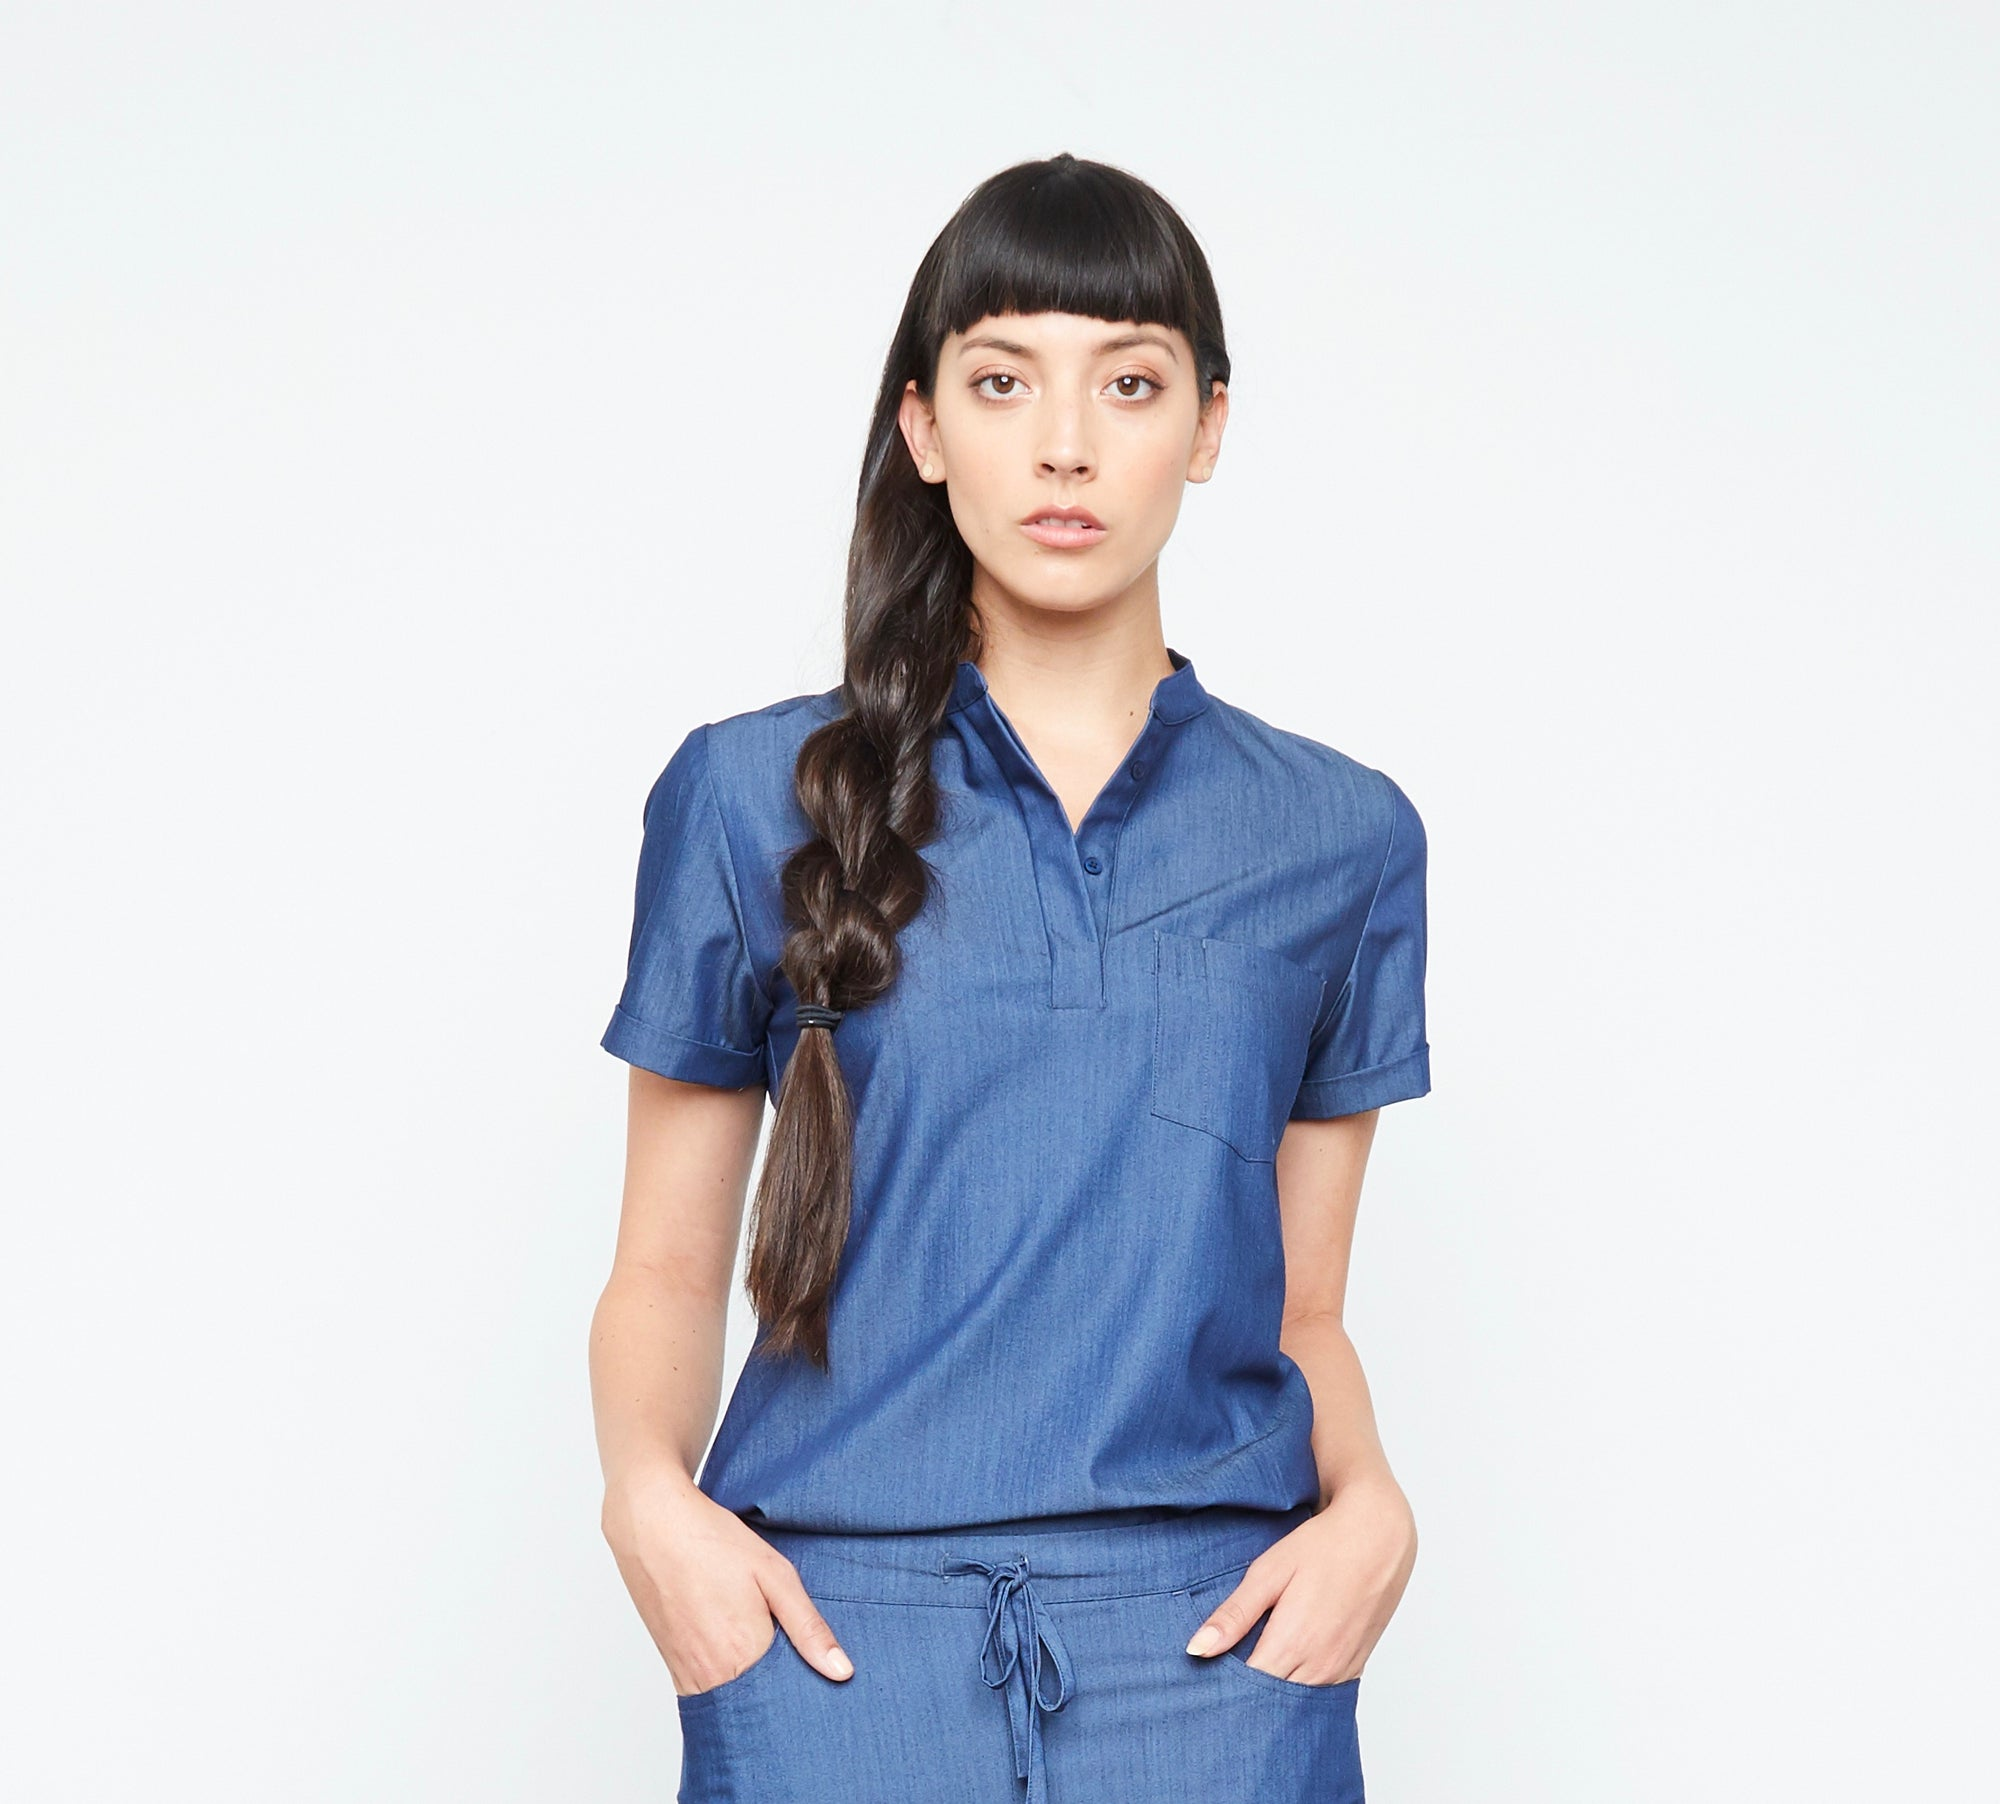 Maverick Top (Neptune Dust) | Fabled makes designer scrub fashions, cute dental scrubs, and cute vet scrubs. All Fabled's cute scrubs made in USA.